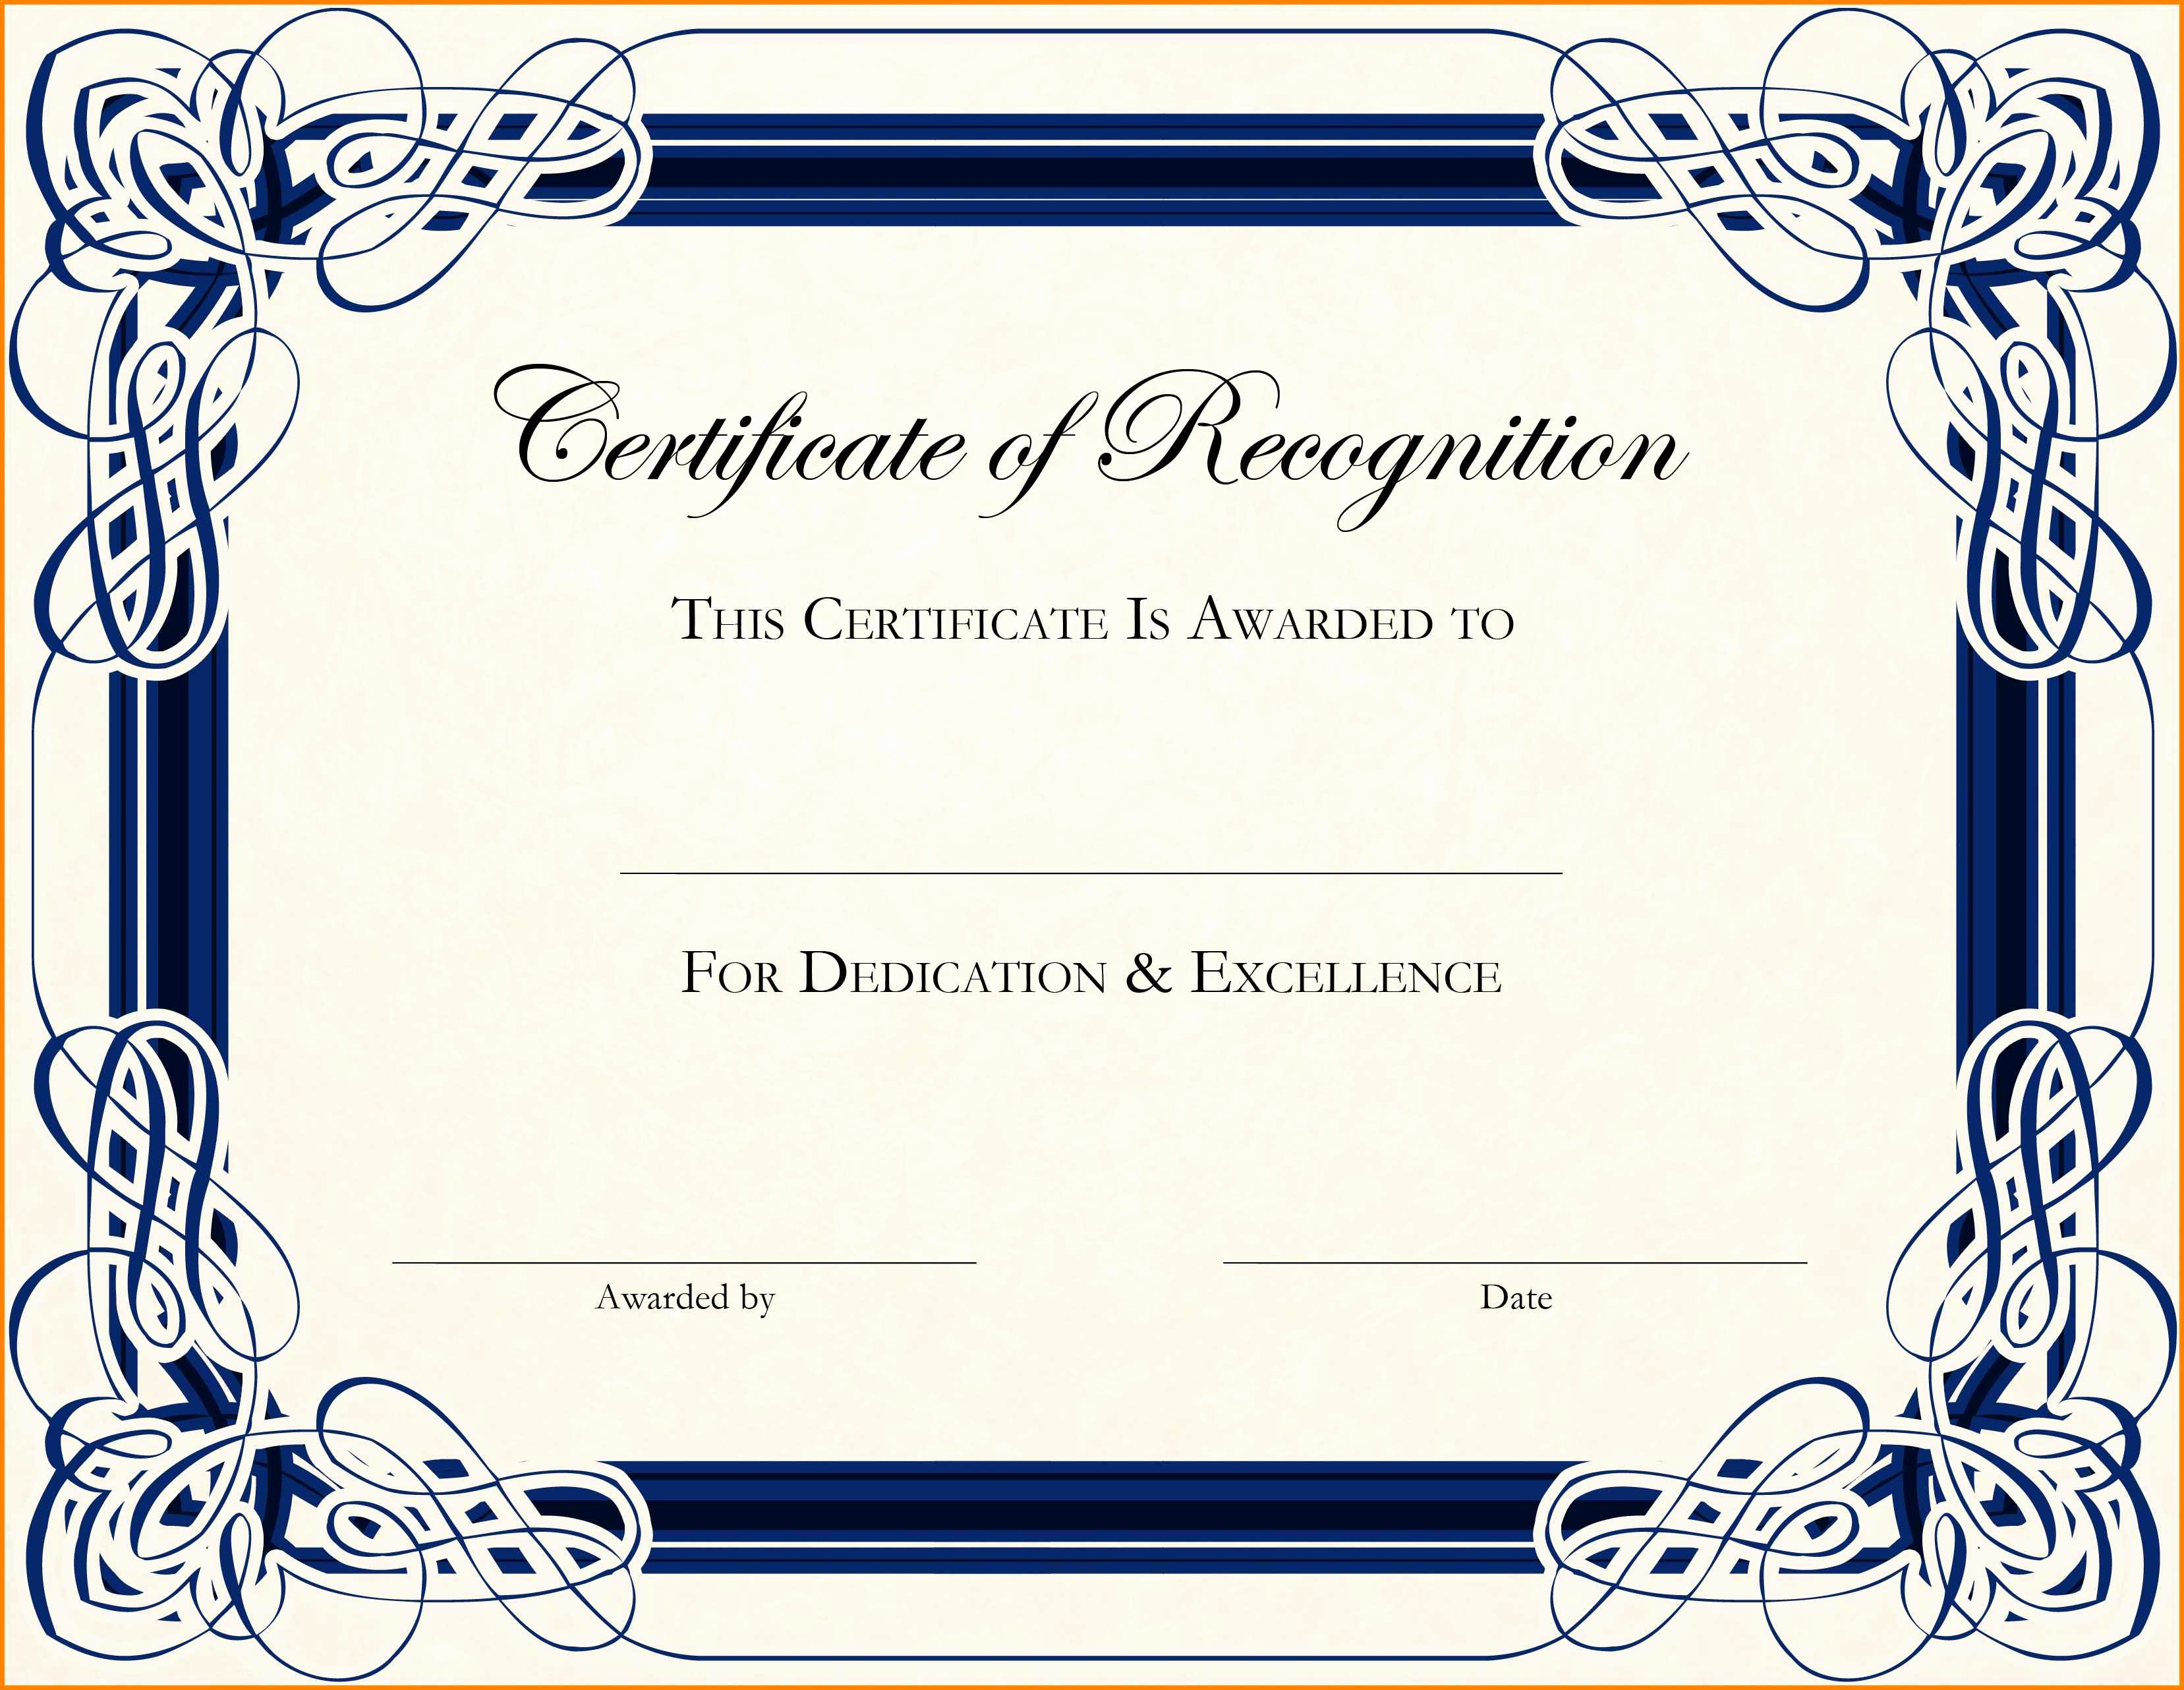 Certificate Of Completion Template Free Fresh 12 Editable Certificate Template